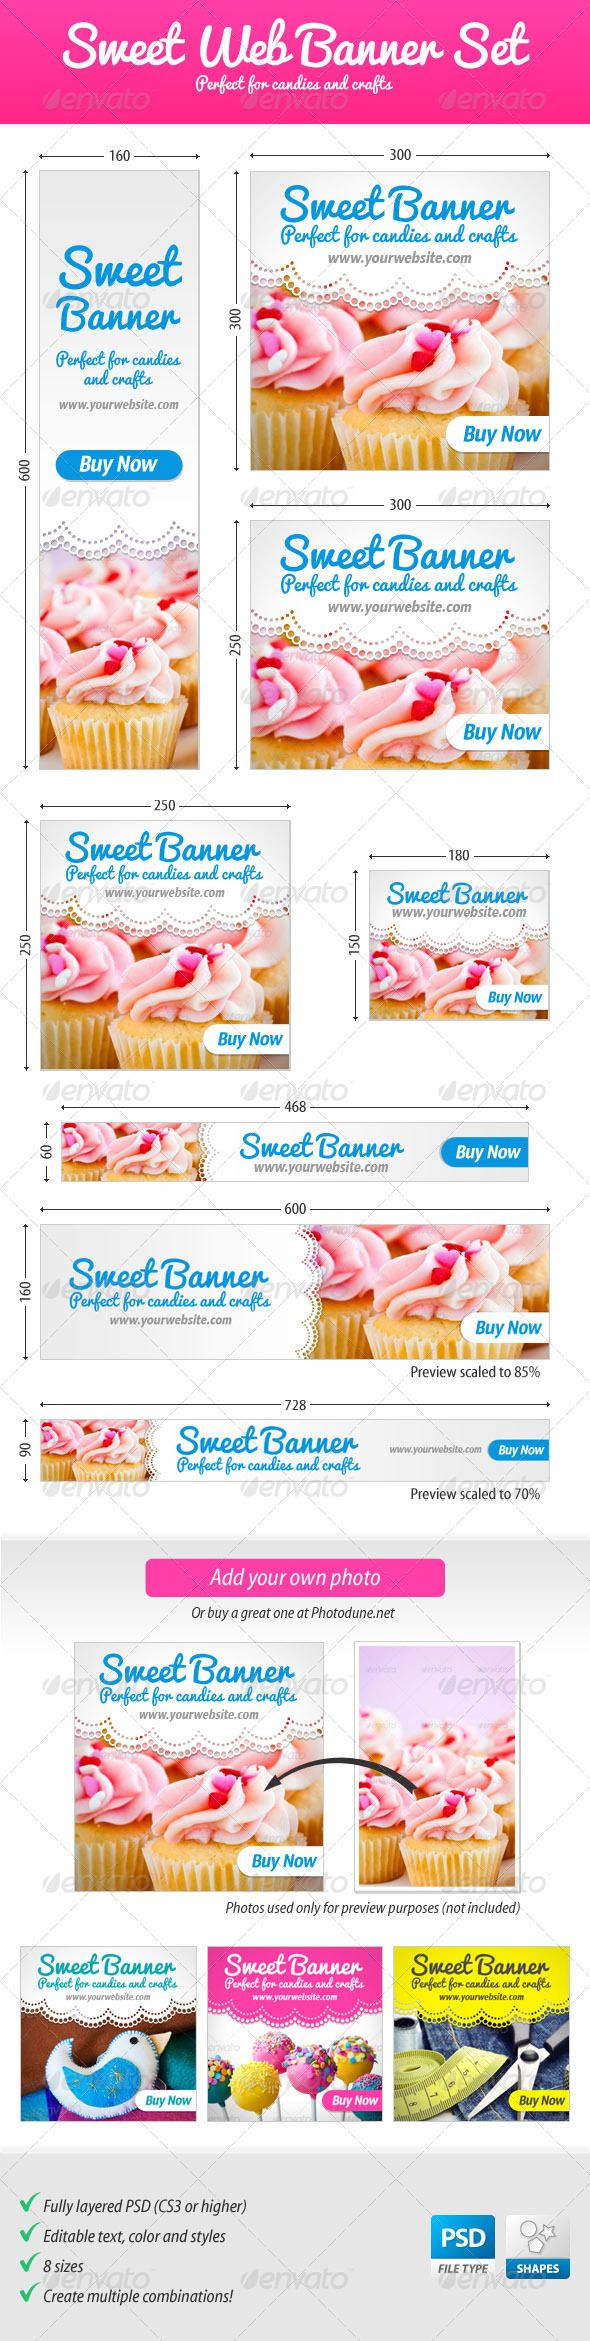 Sweet Web Banner Set – Perfect for candies and crafts / @Envato GraphicRiver | Google Adwords Banners, Static Banners, banner pack, banner set, banners adwords, marketing, advertising, web banners